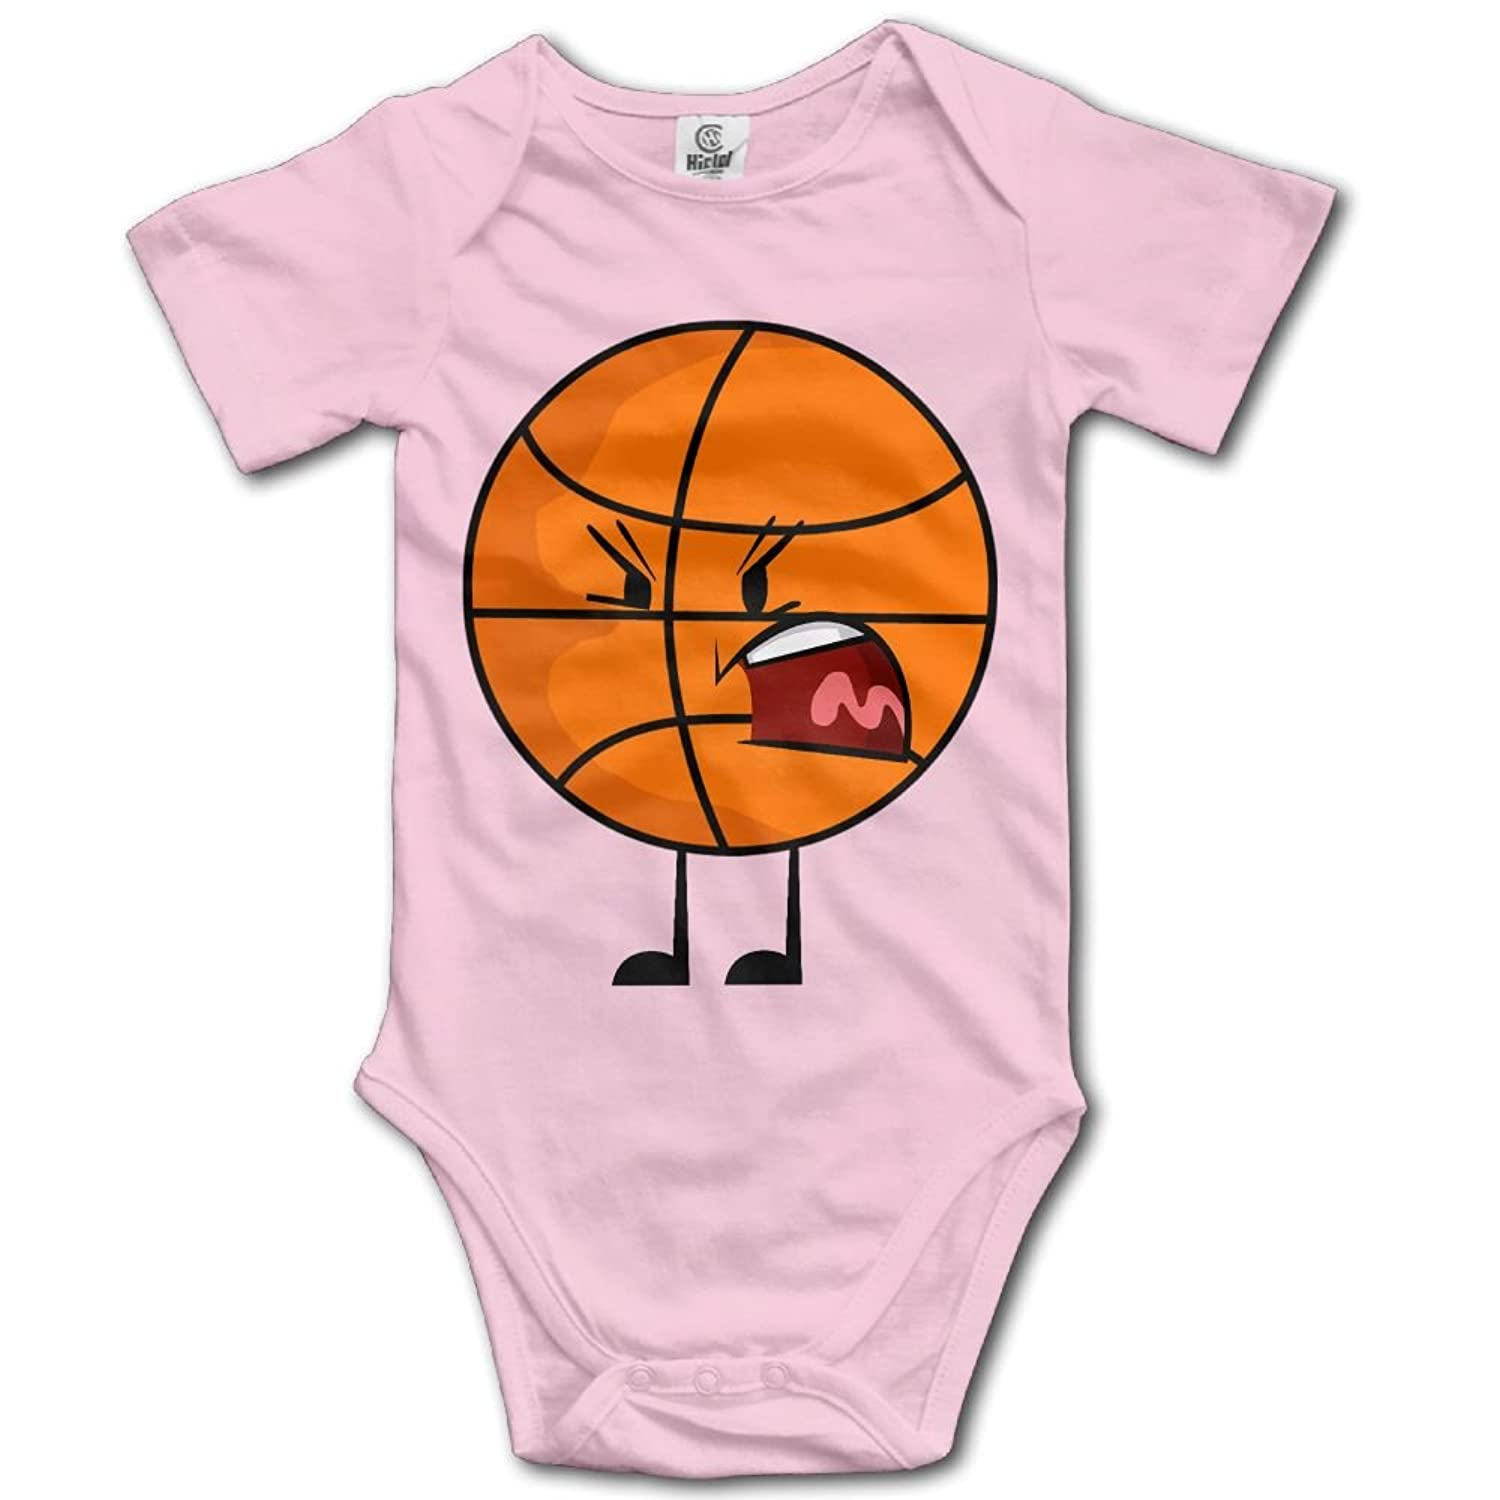 Jaylon Baby Climbing Clothes Romper Object Universe Basketball